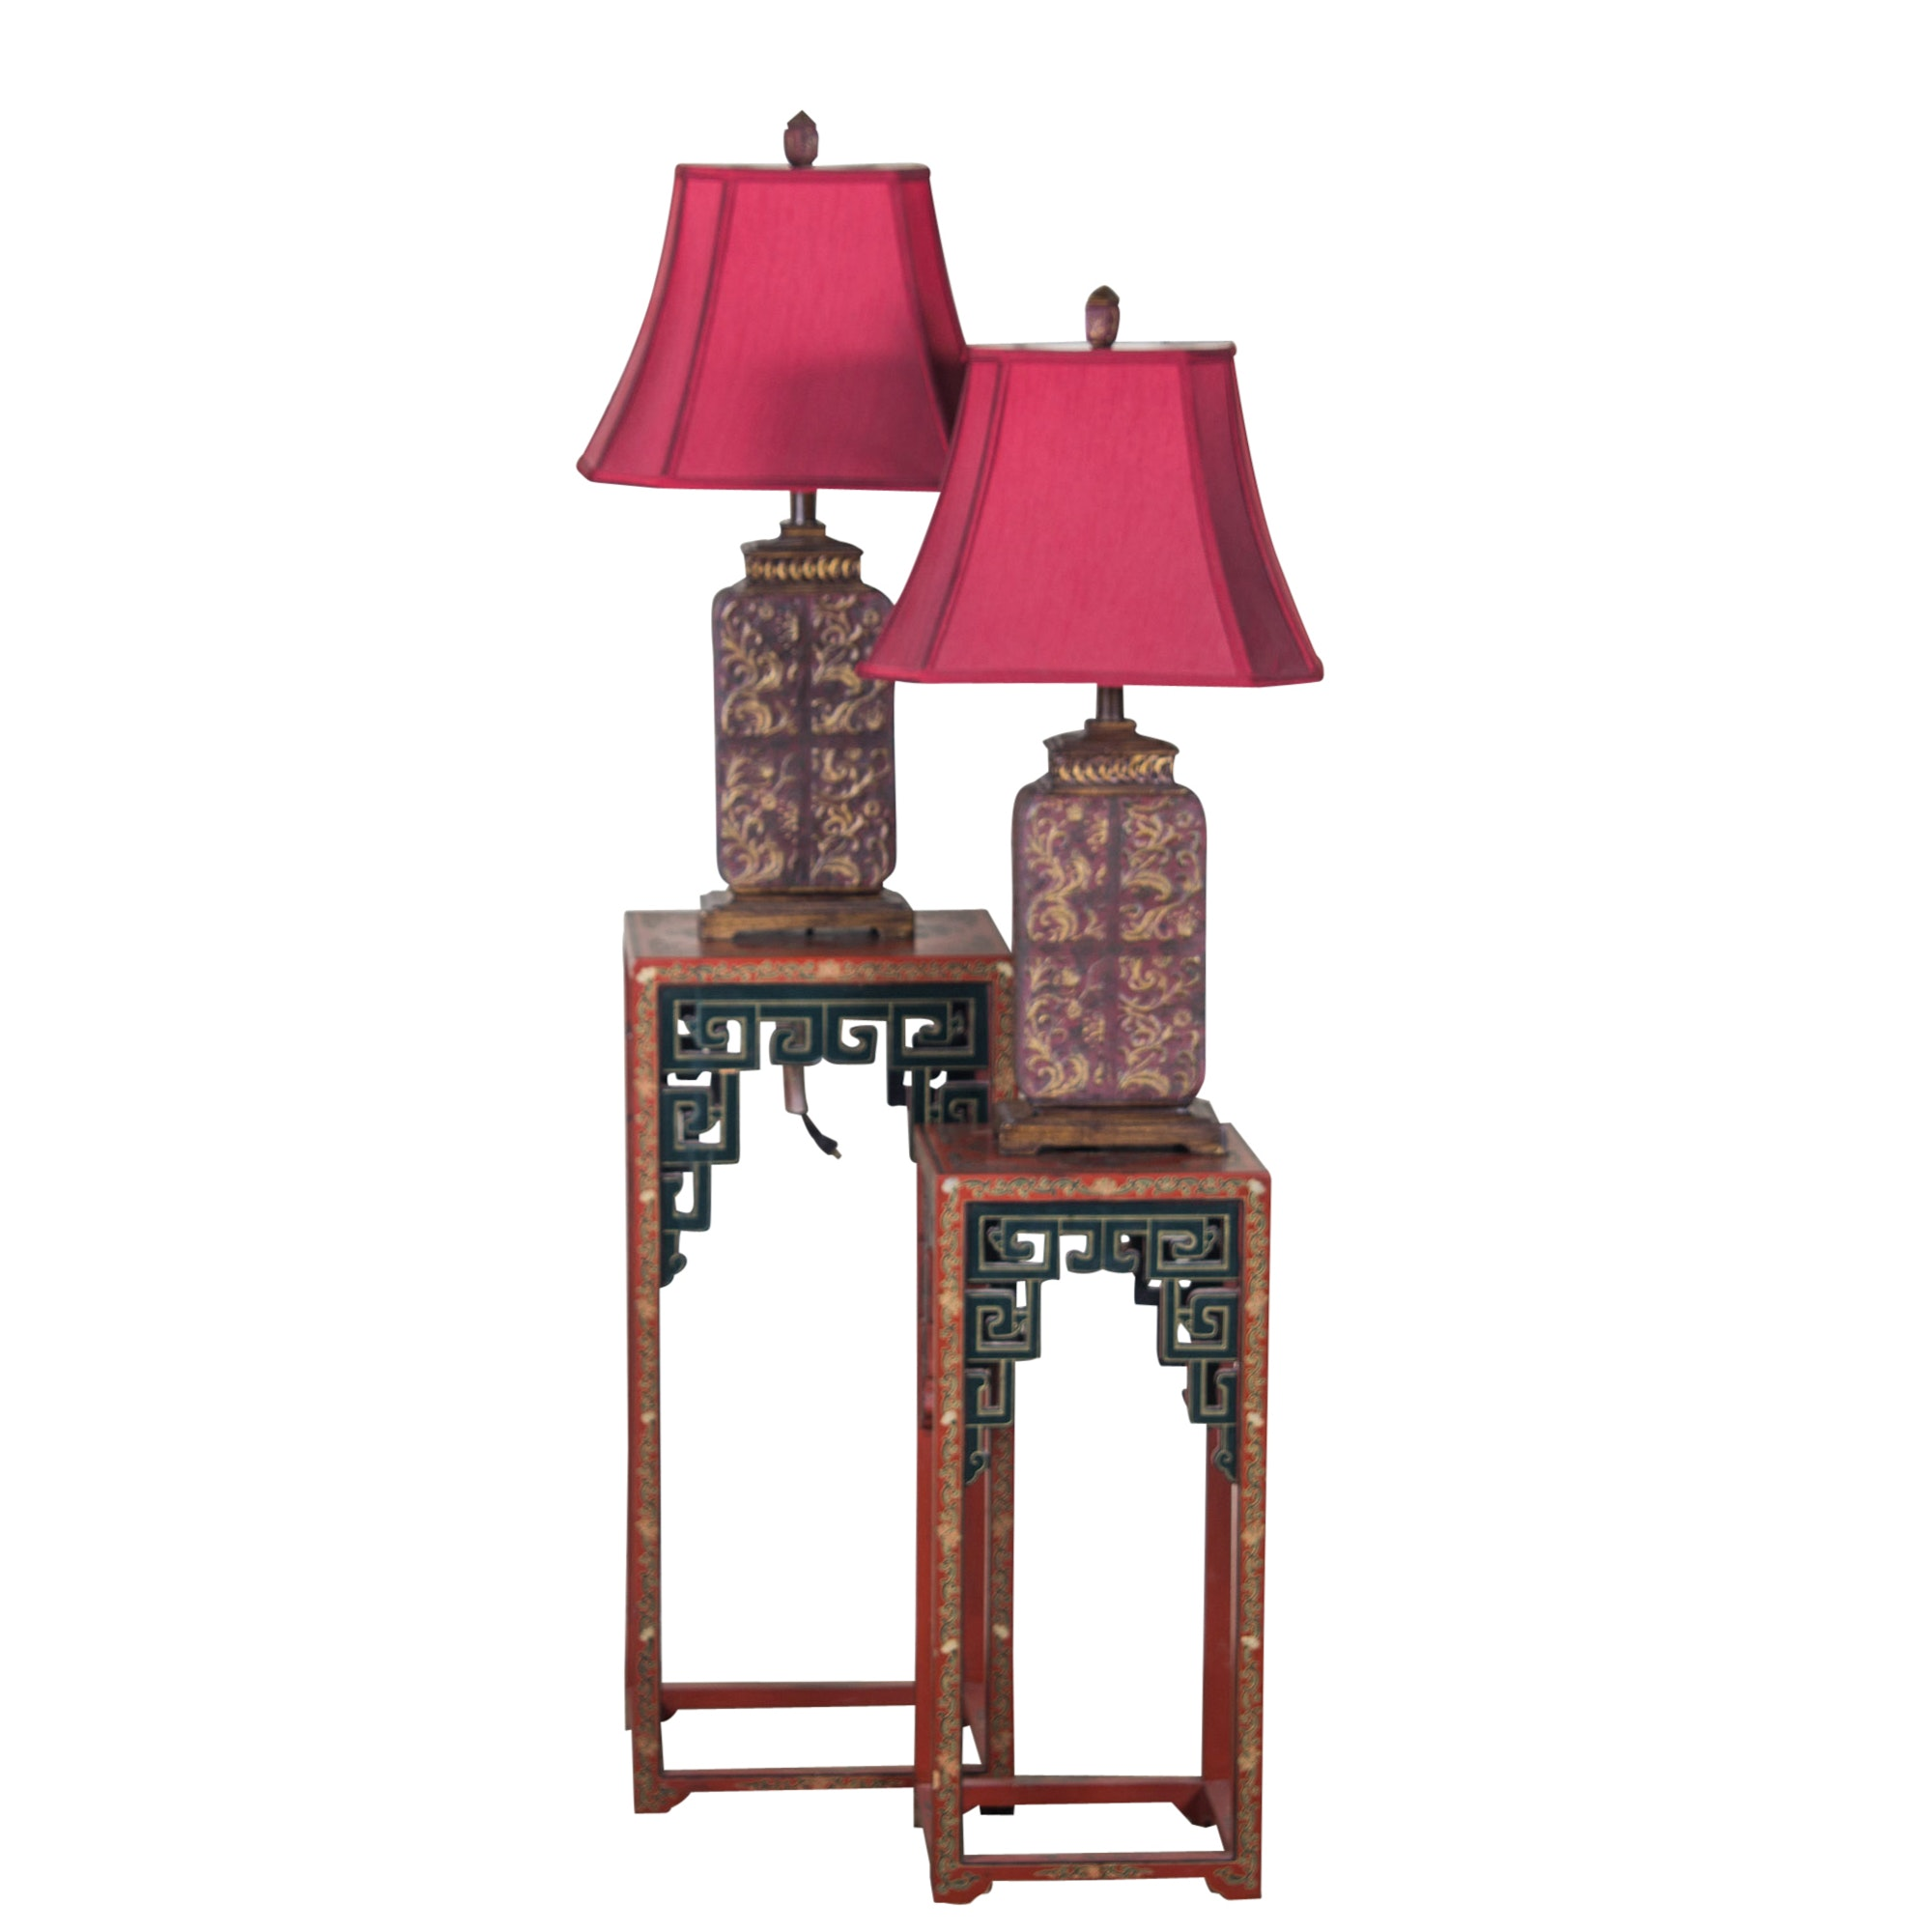 Assortment of Asian Inspired Lamps and Nesting Tables